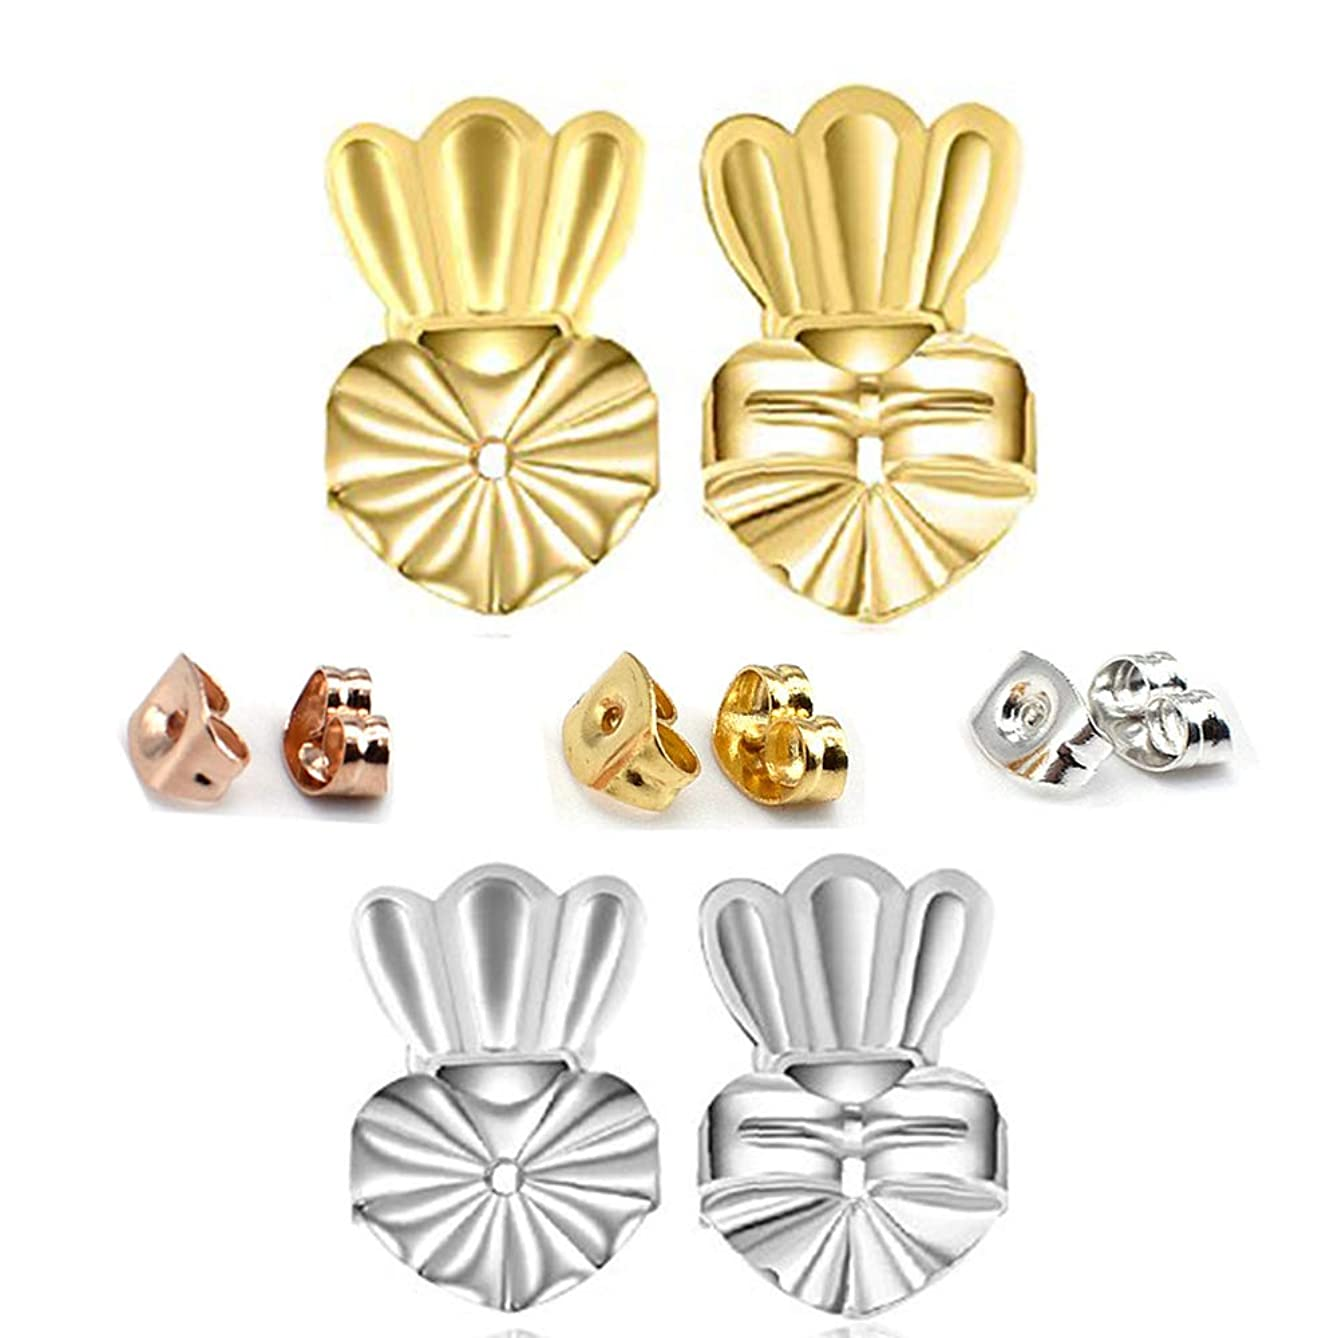 Earring Backs - Amzonbasics Earring Lifters ? 2 Pairs of Adjustable Magic Back Earring Lift for Droopy Ears (Sterling Silver, 18k Gold Plated, Crown) +3 Pair Small Earings Backs